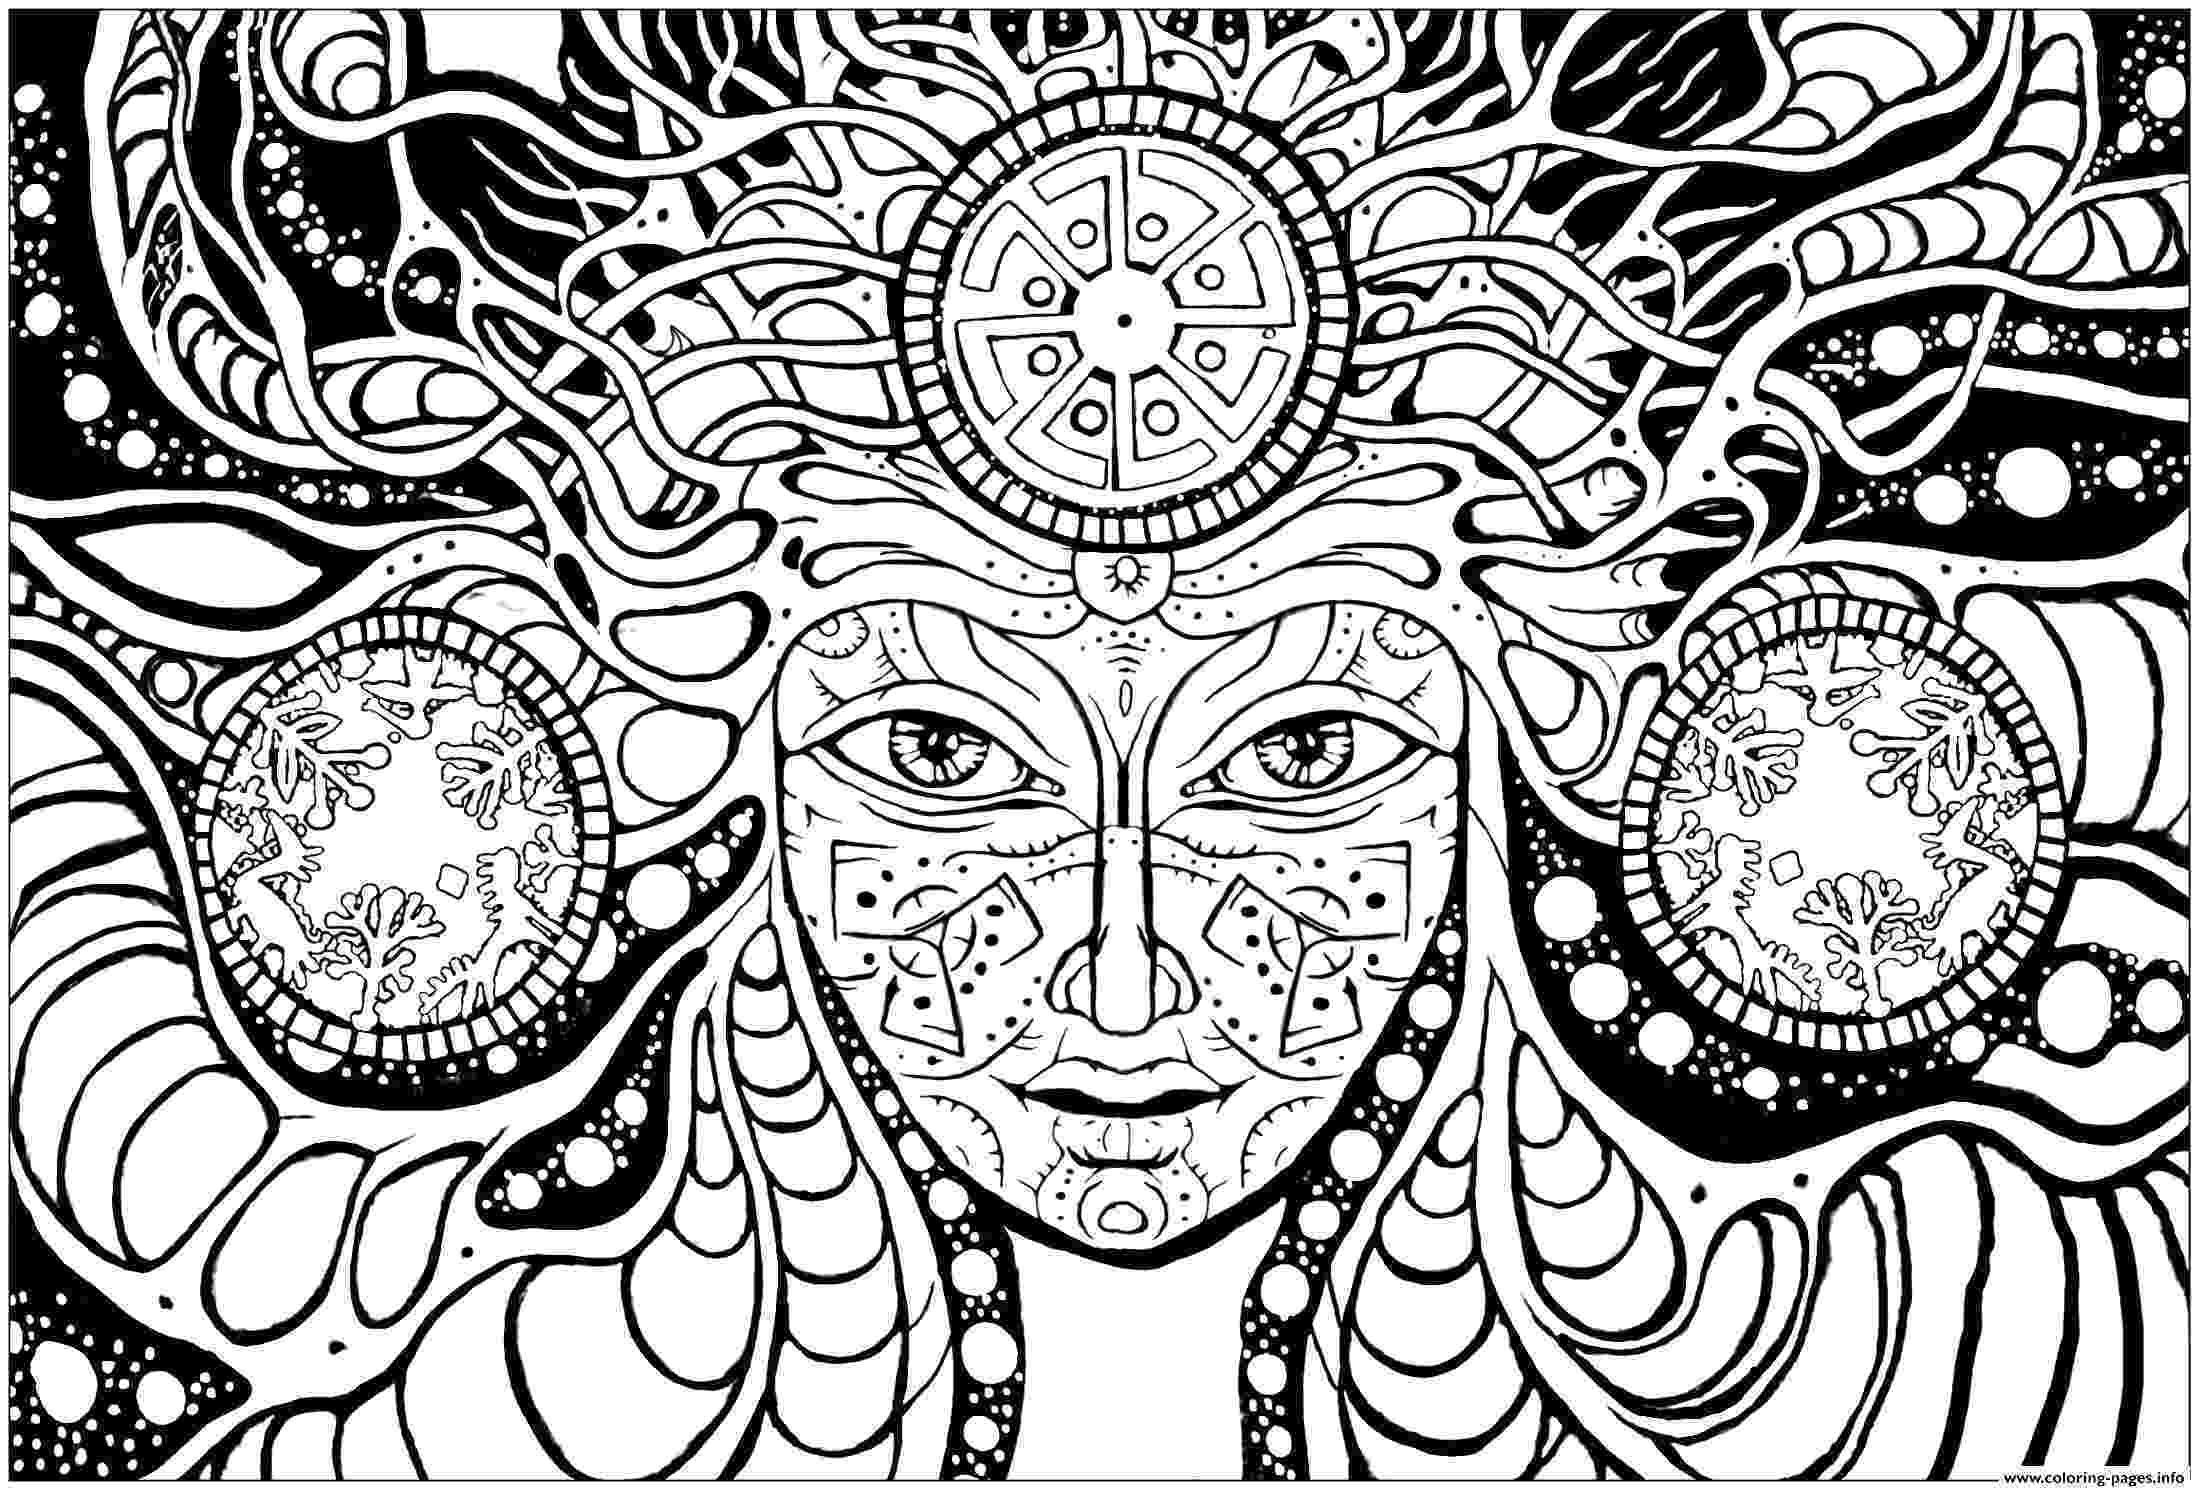 trippy coloring pages printable trippy drawing at getdrawingscom free for personal use coloring pages printable trippy